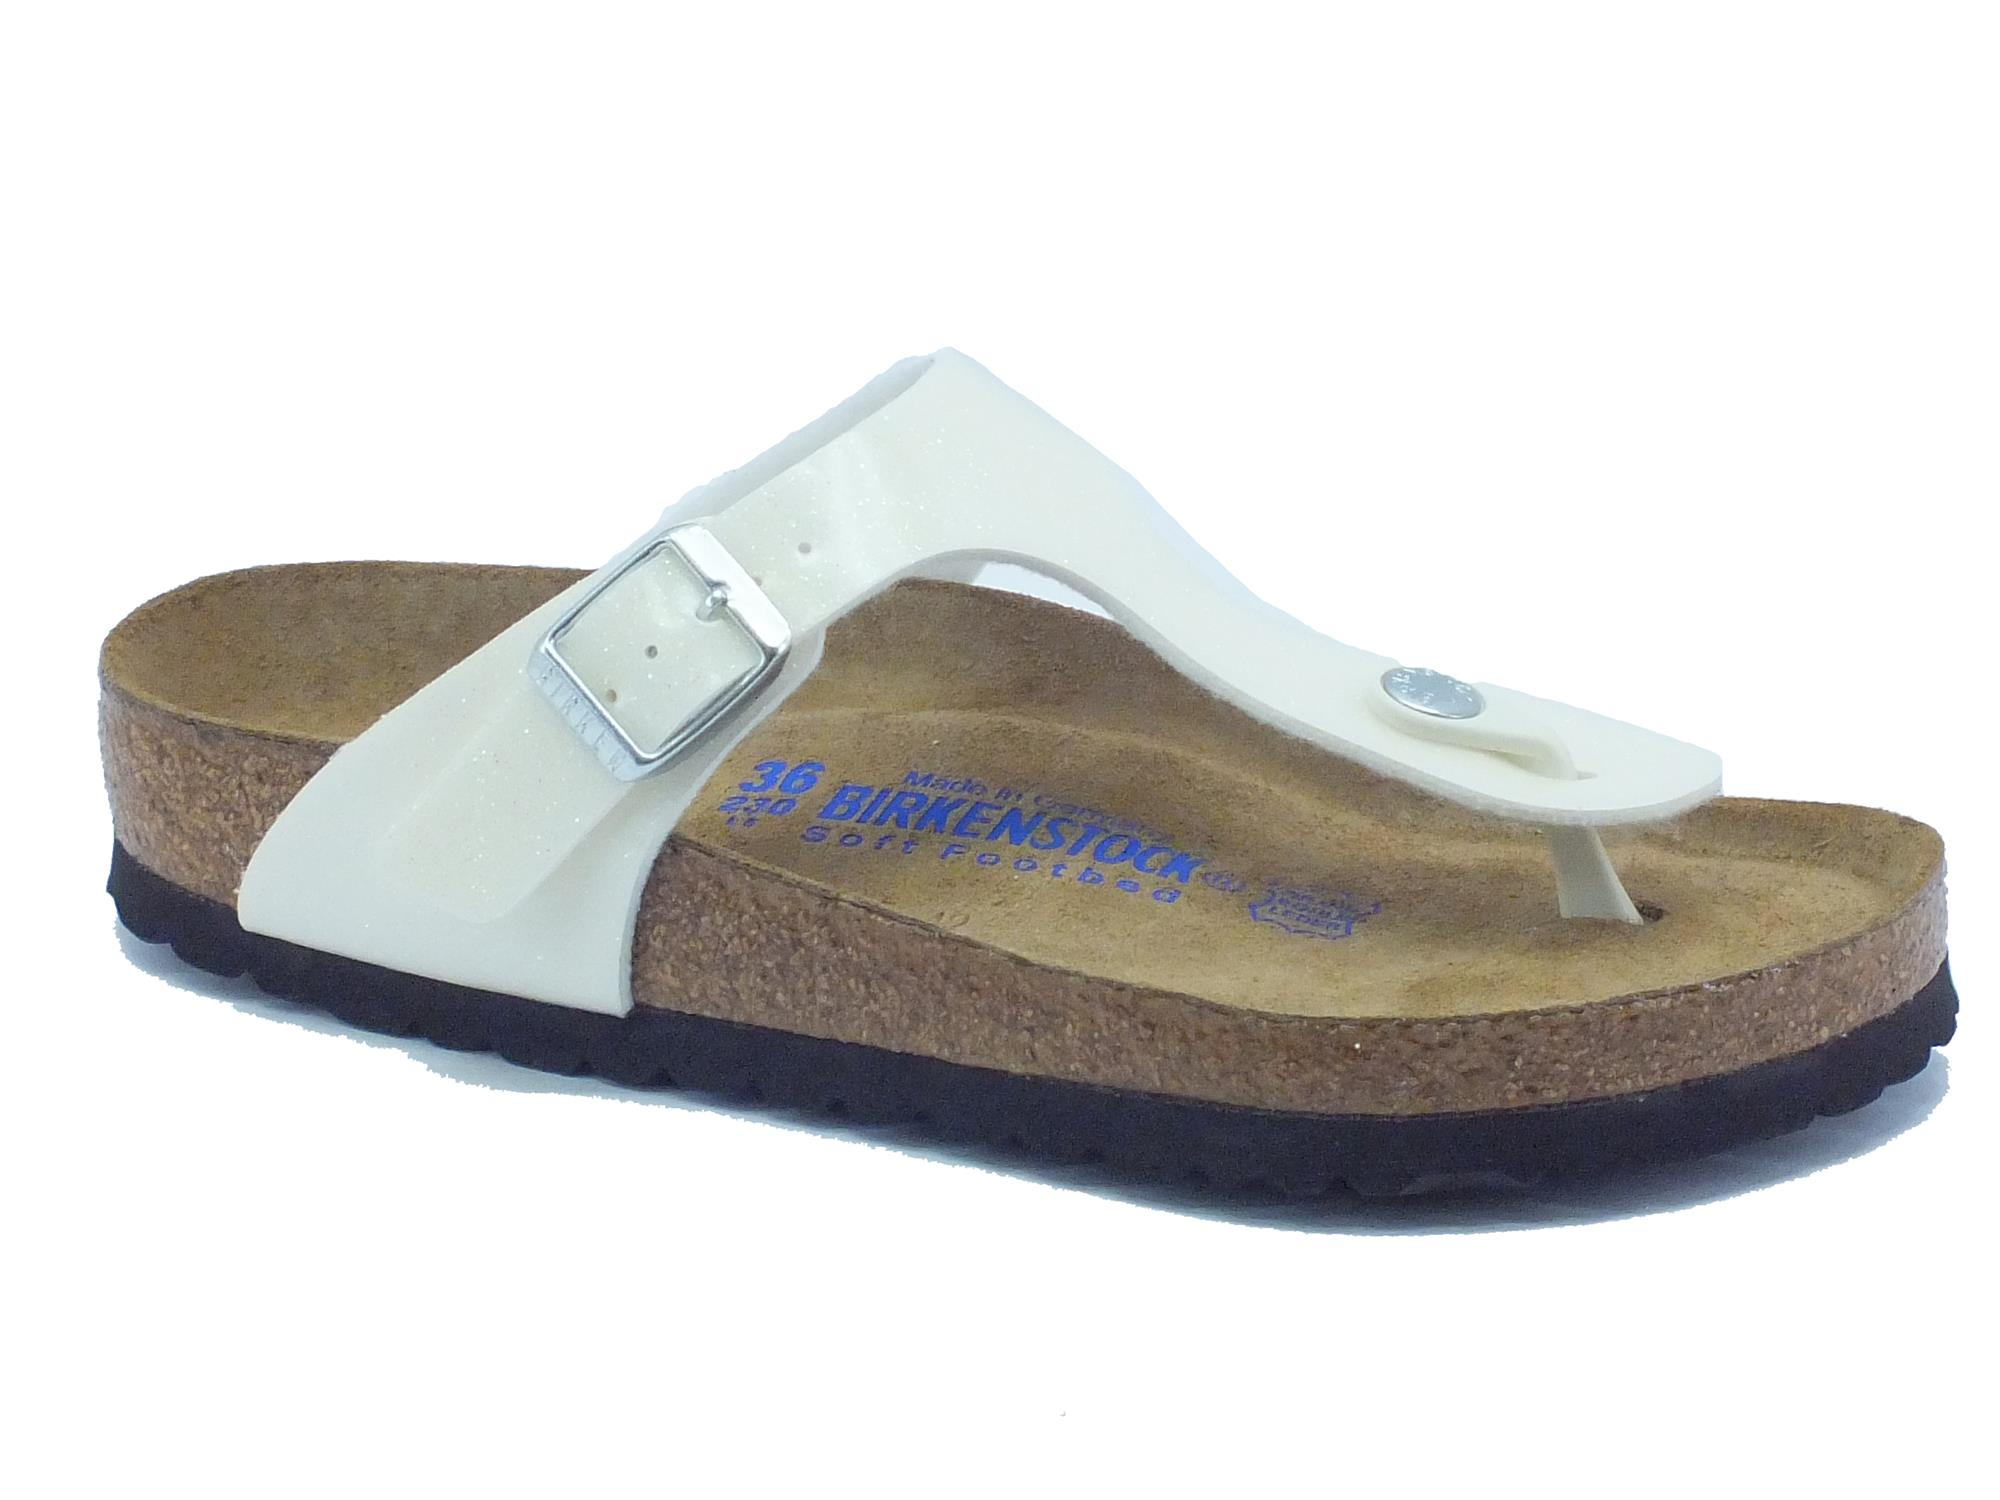 Infradito Birkenstock donna sintetico bianco magic - Vitiello Calzature da075675b98